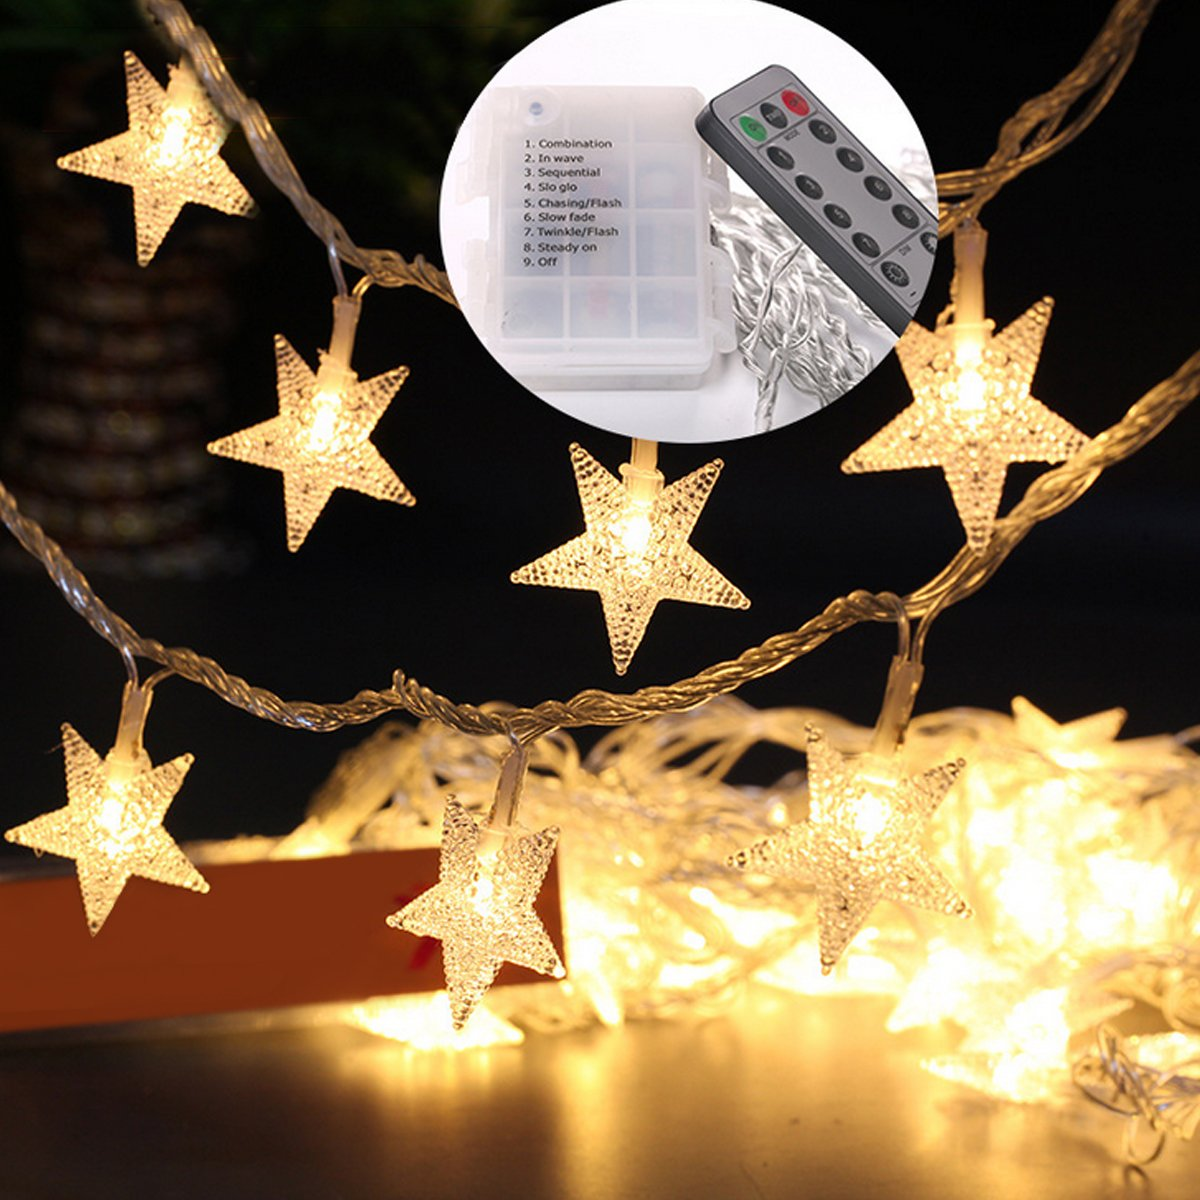 Get Quotations Yotako 5m 40 Led Star String Lights Battery Operated With Remote Decorative Fairy